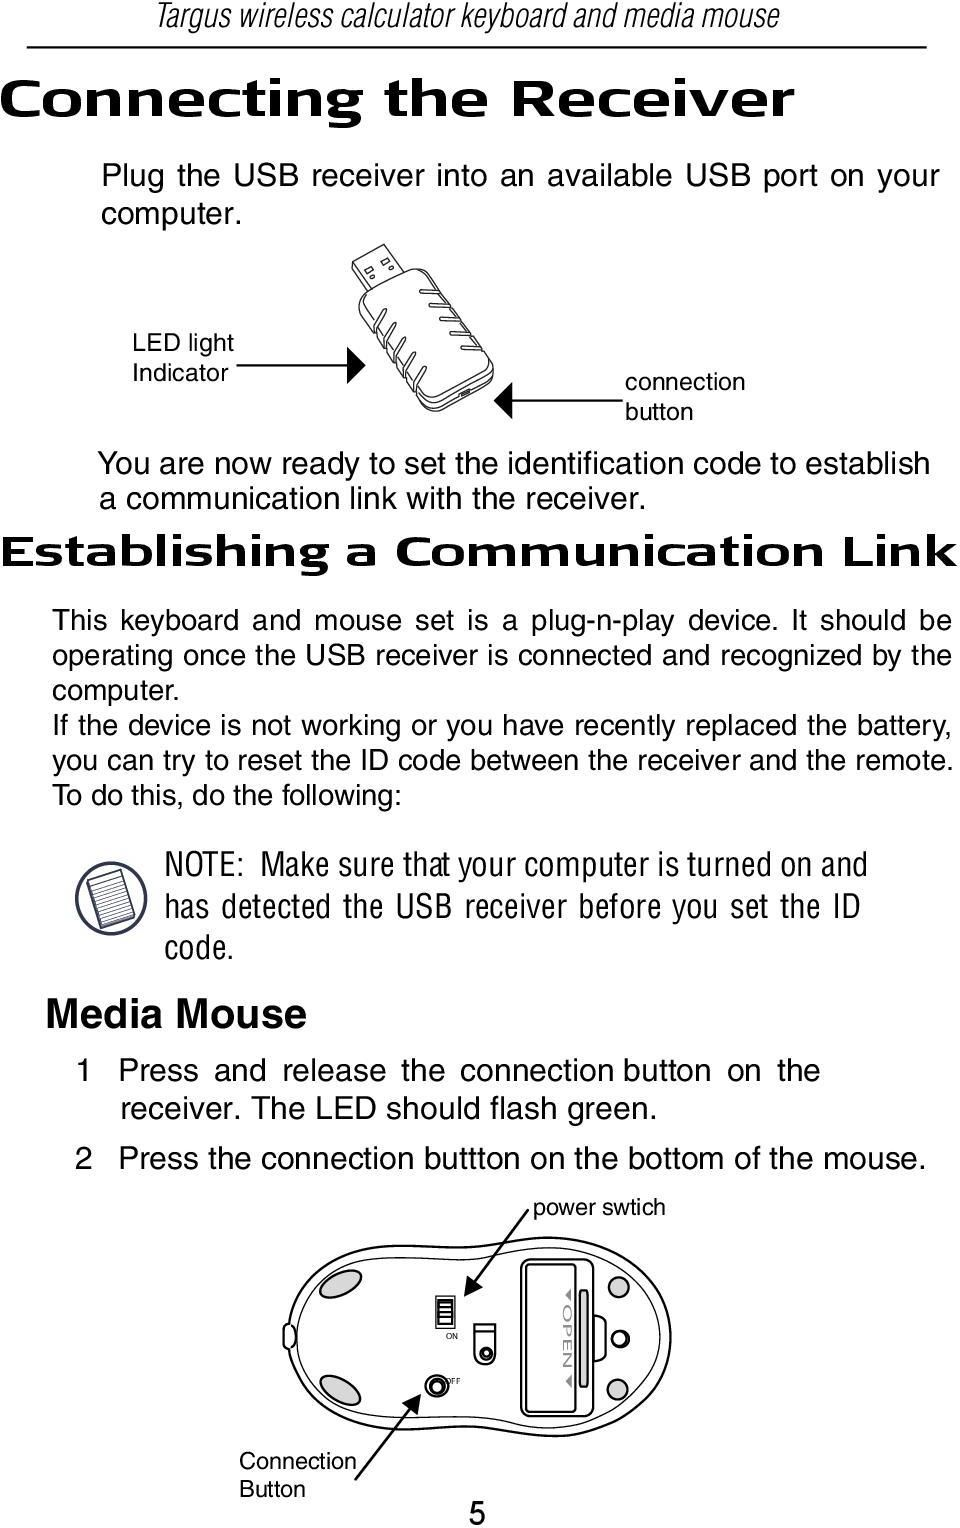 Media Mouse 1 Press and release the connection button on the receiver. The LED should flash green. 2 Press the connection buttton on the bottom of the mouse.